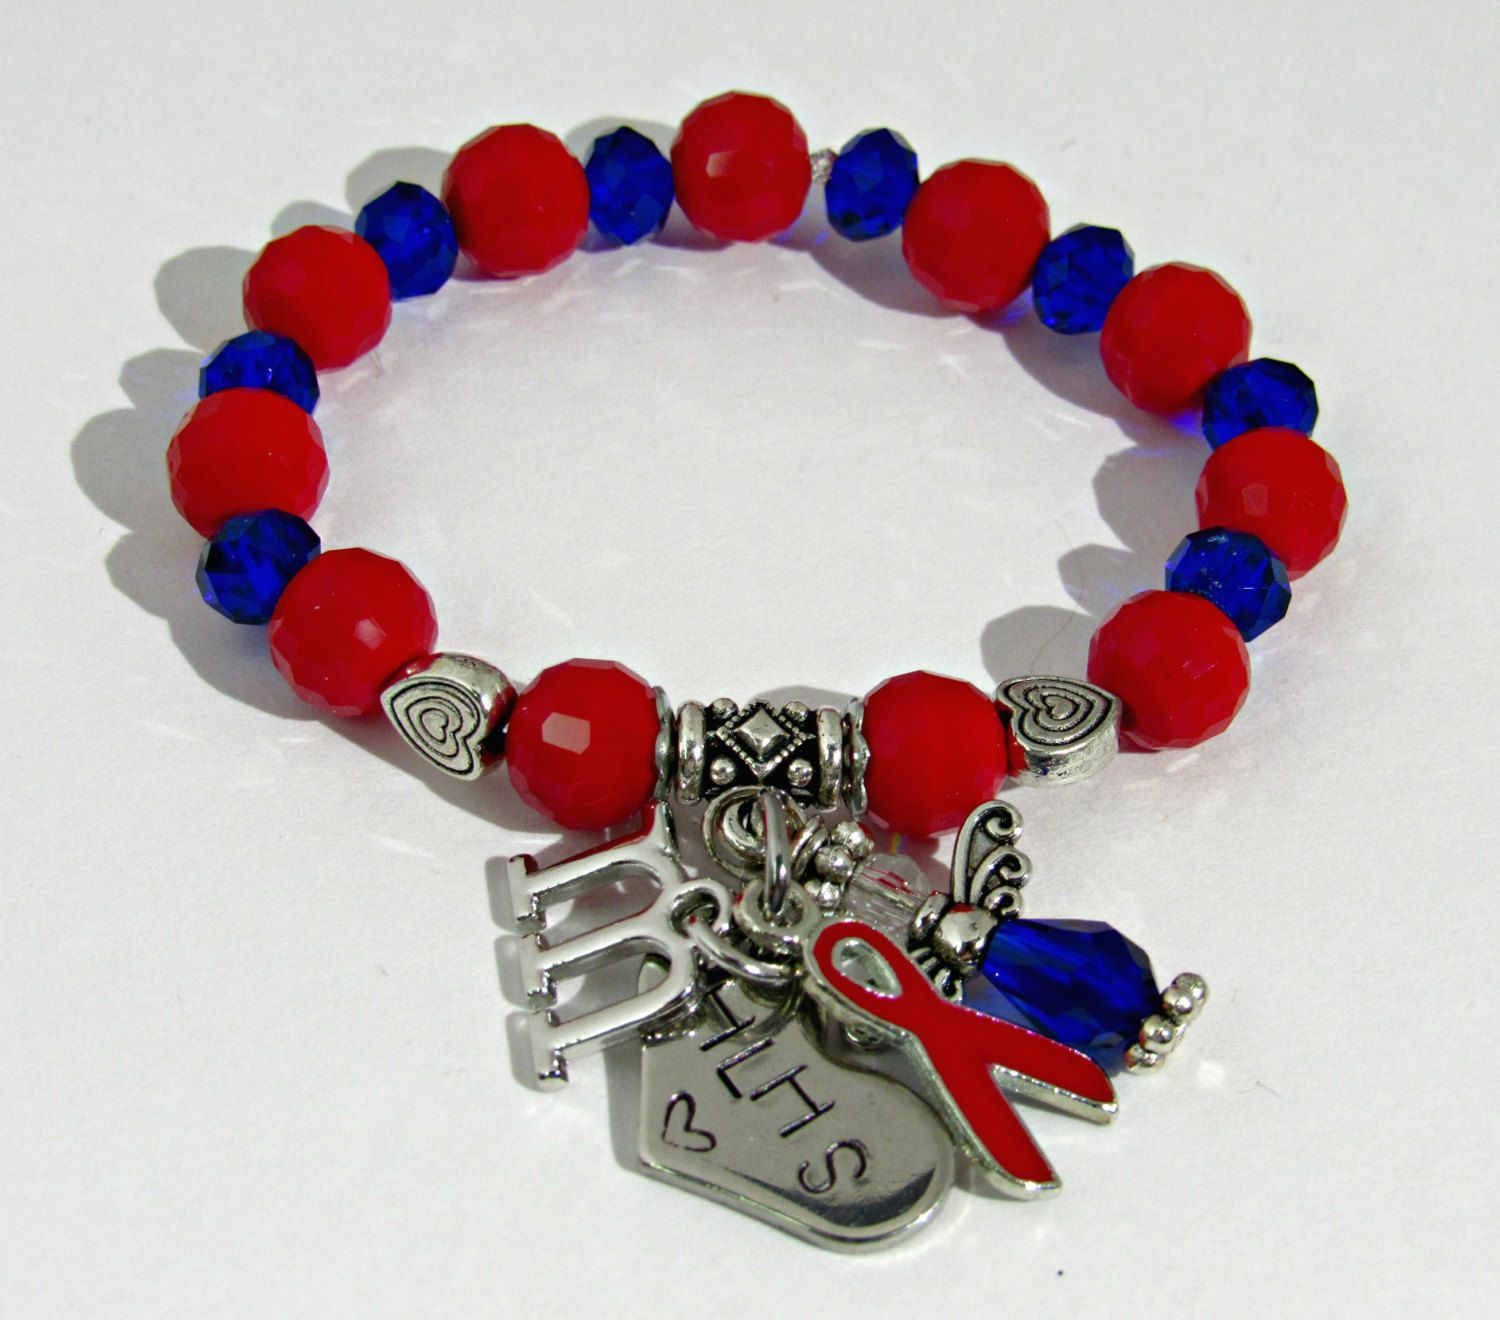 Child S Chd Bracelet Heart Awareness Red And Blue Con Defect Ribbon By Artistryjewels On Etsy